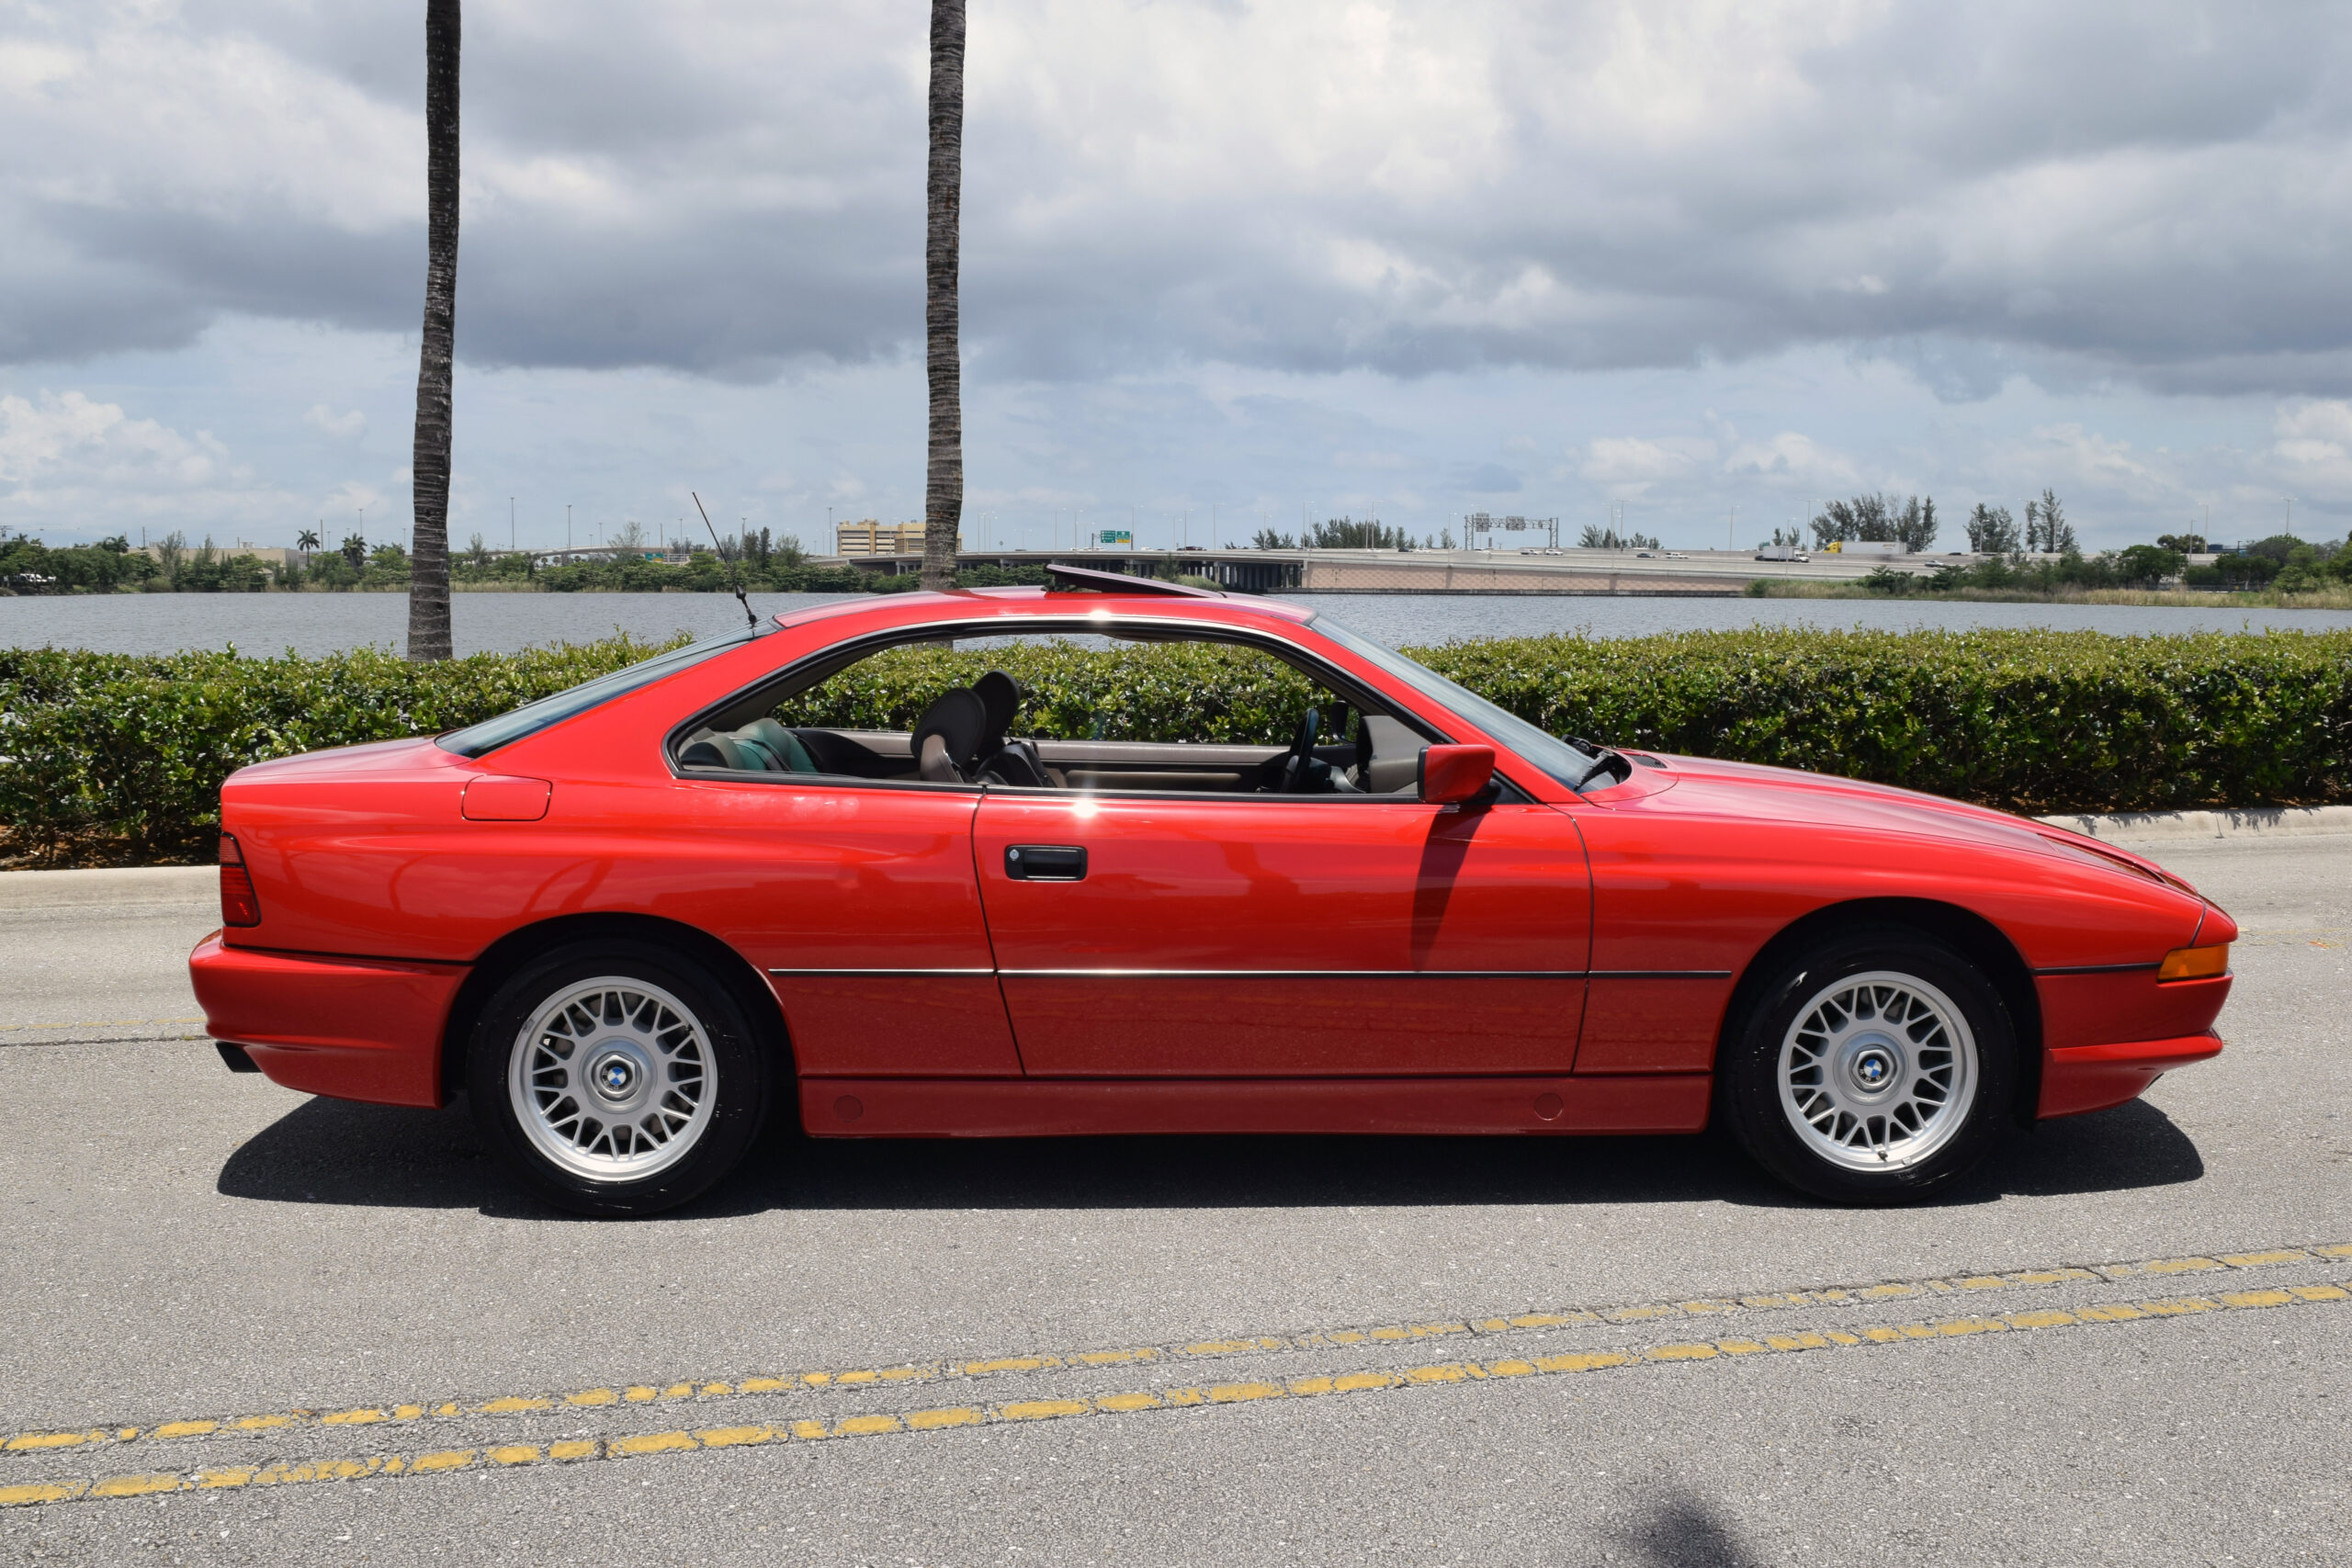 1993 BMW 850 CI, One owner, just 36K miles, Full service records since day one!, original paint